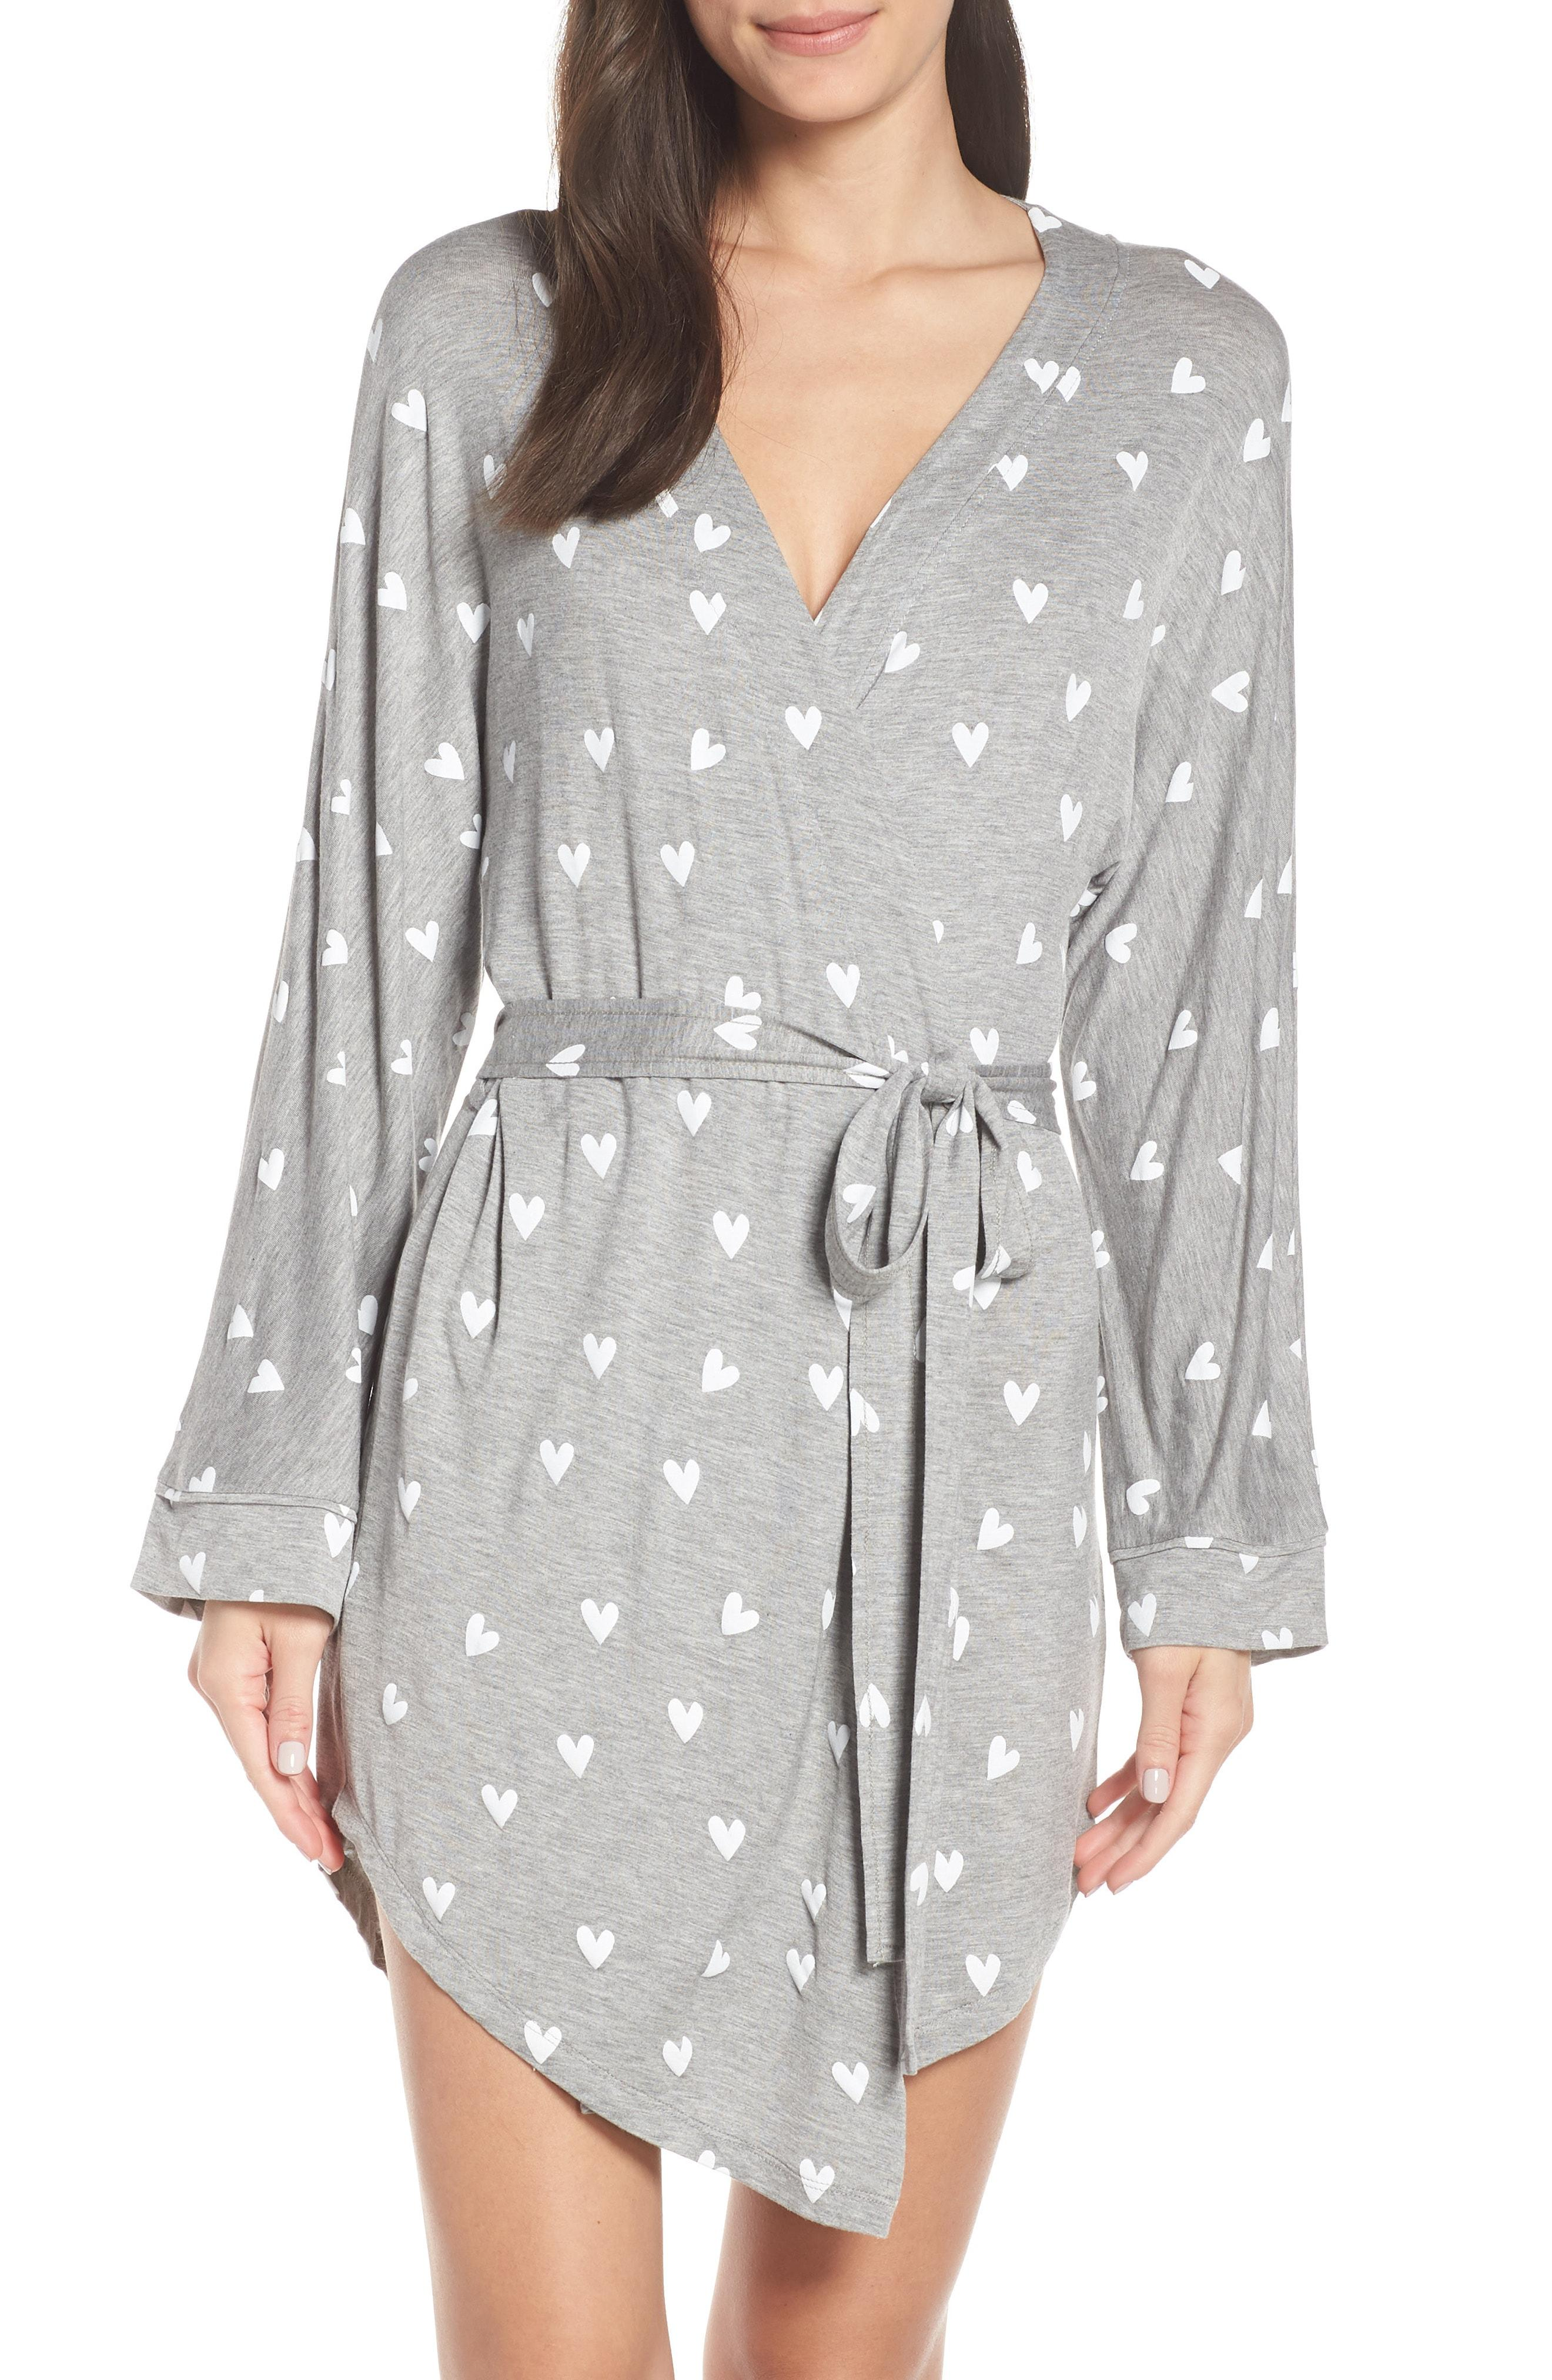 9df09a4fef Lyst - Honeydew Intimates All American Jersey Robe in Gray